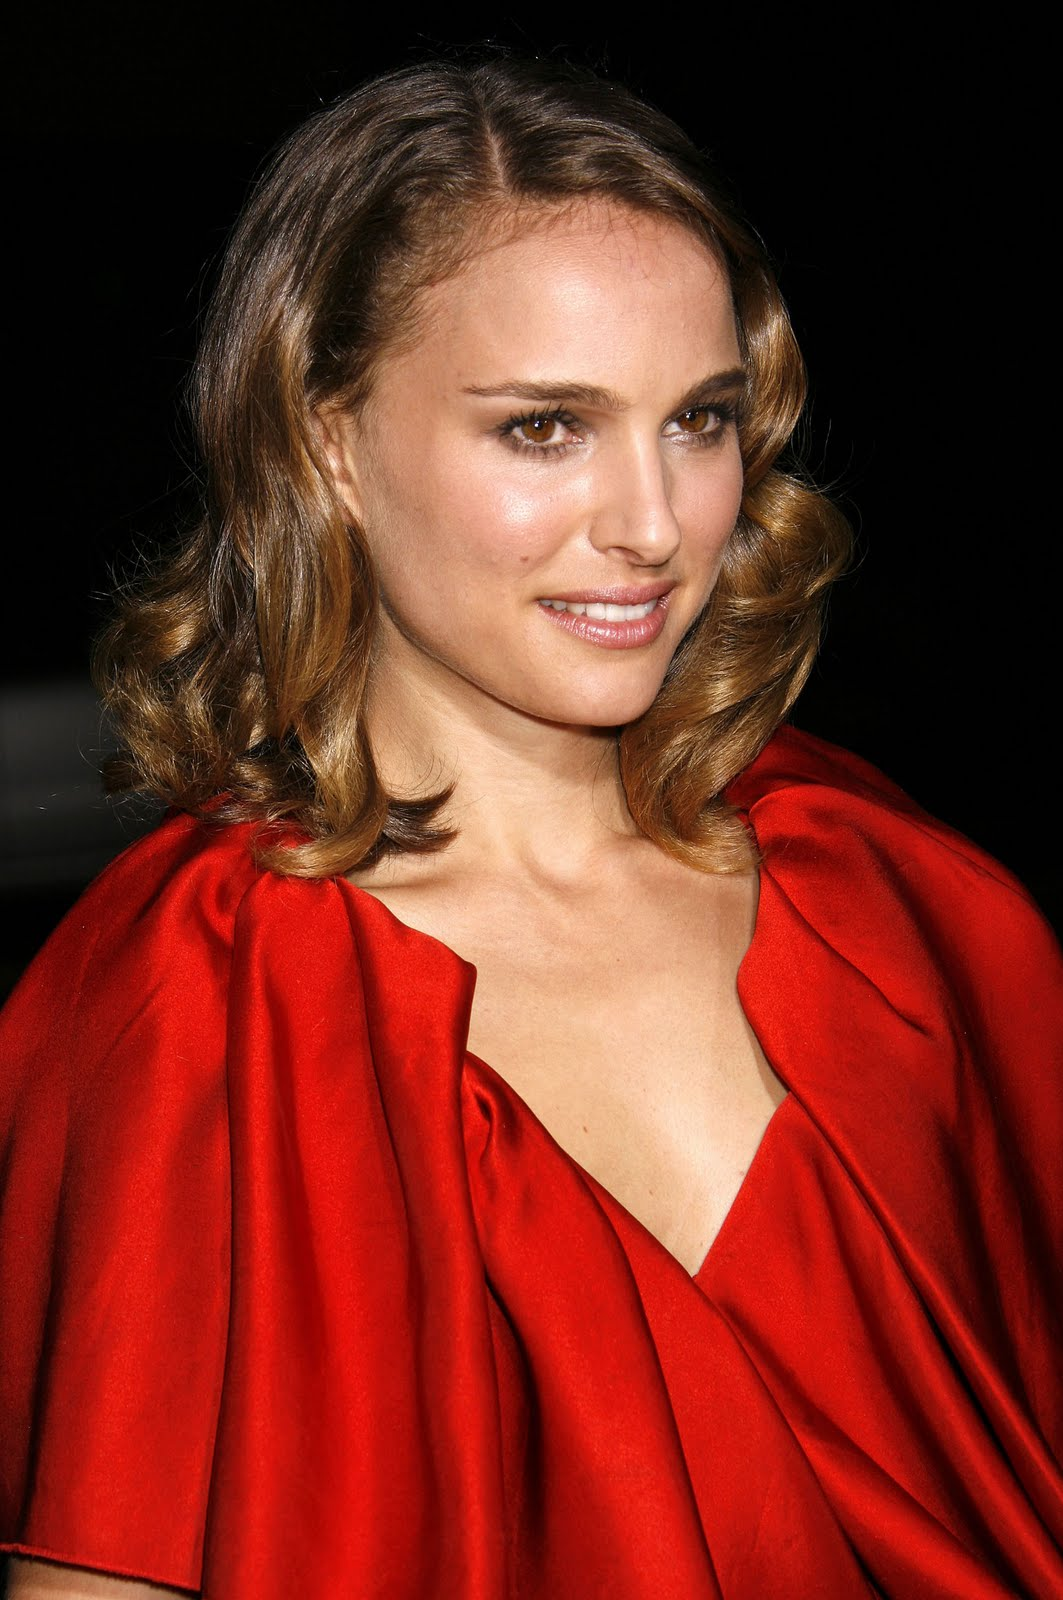 a new life hartz: Natalie Portman in Different Hairstyle Look